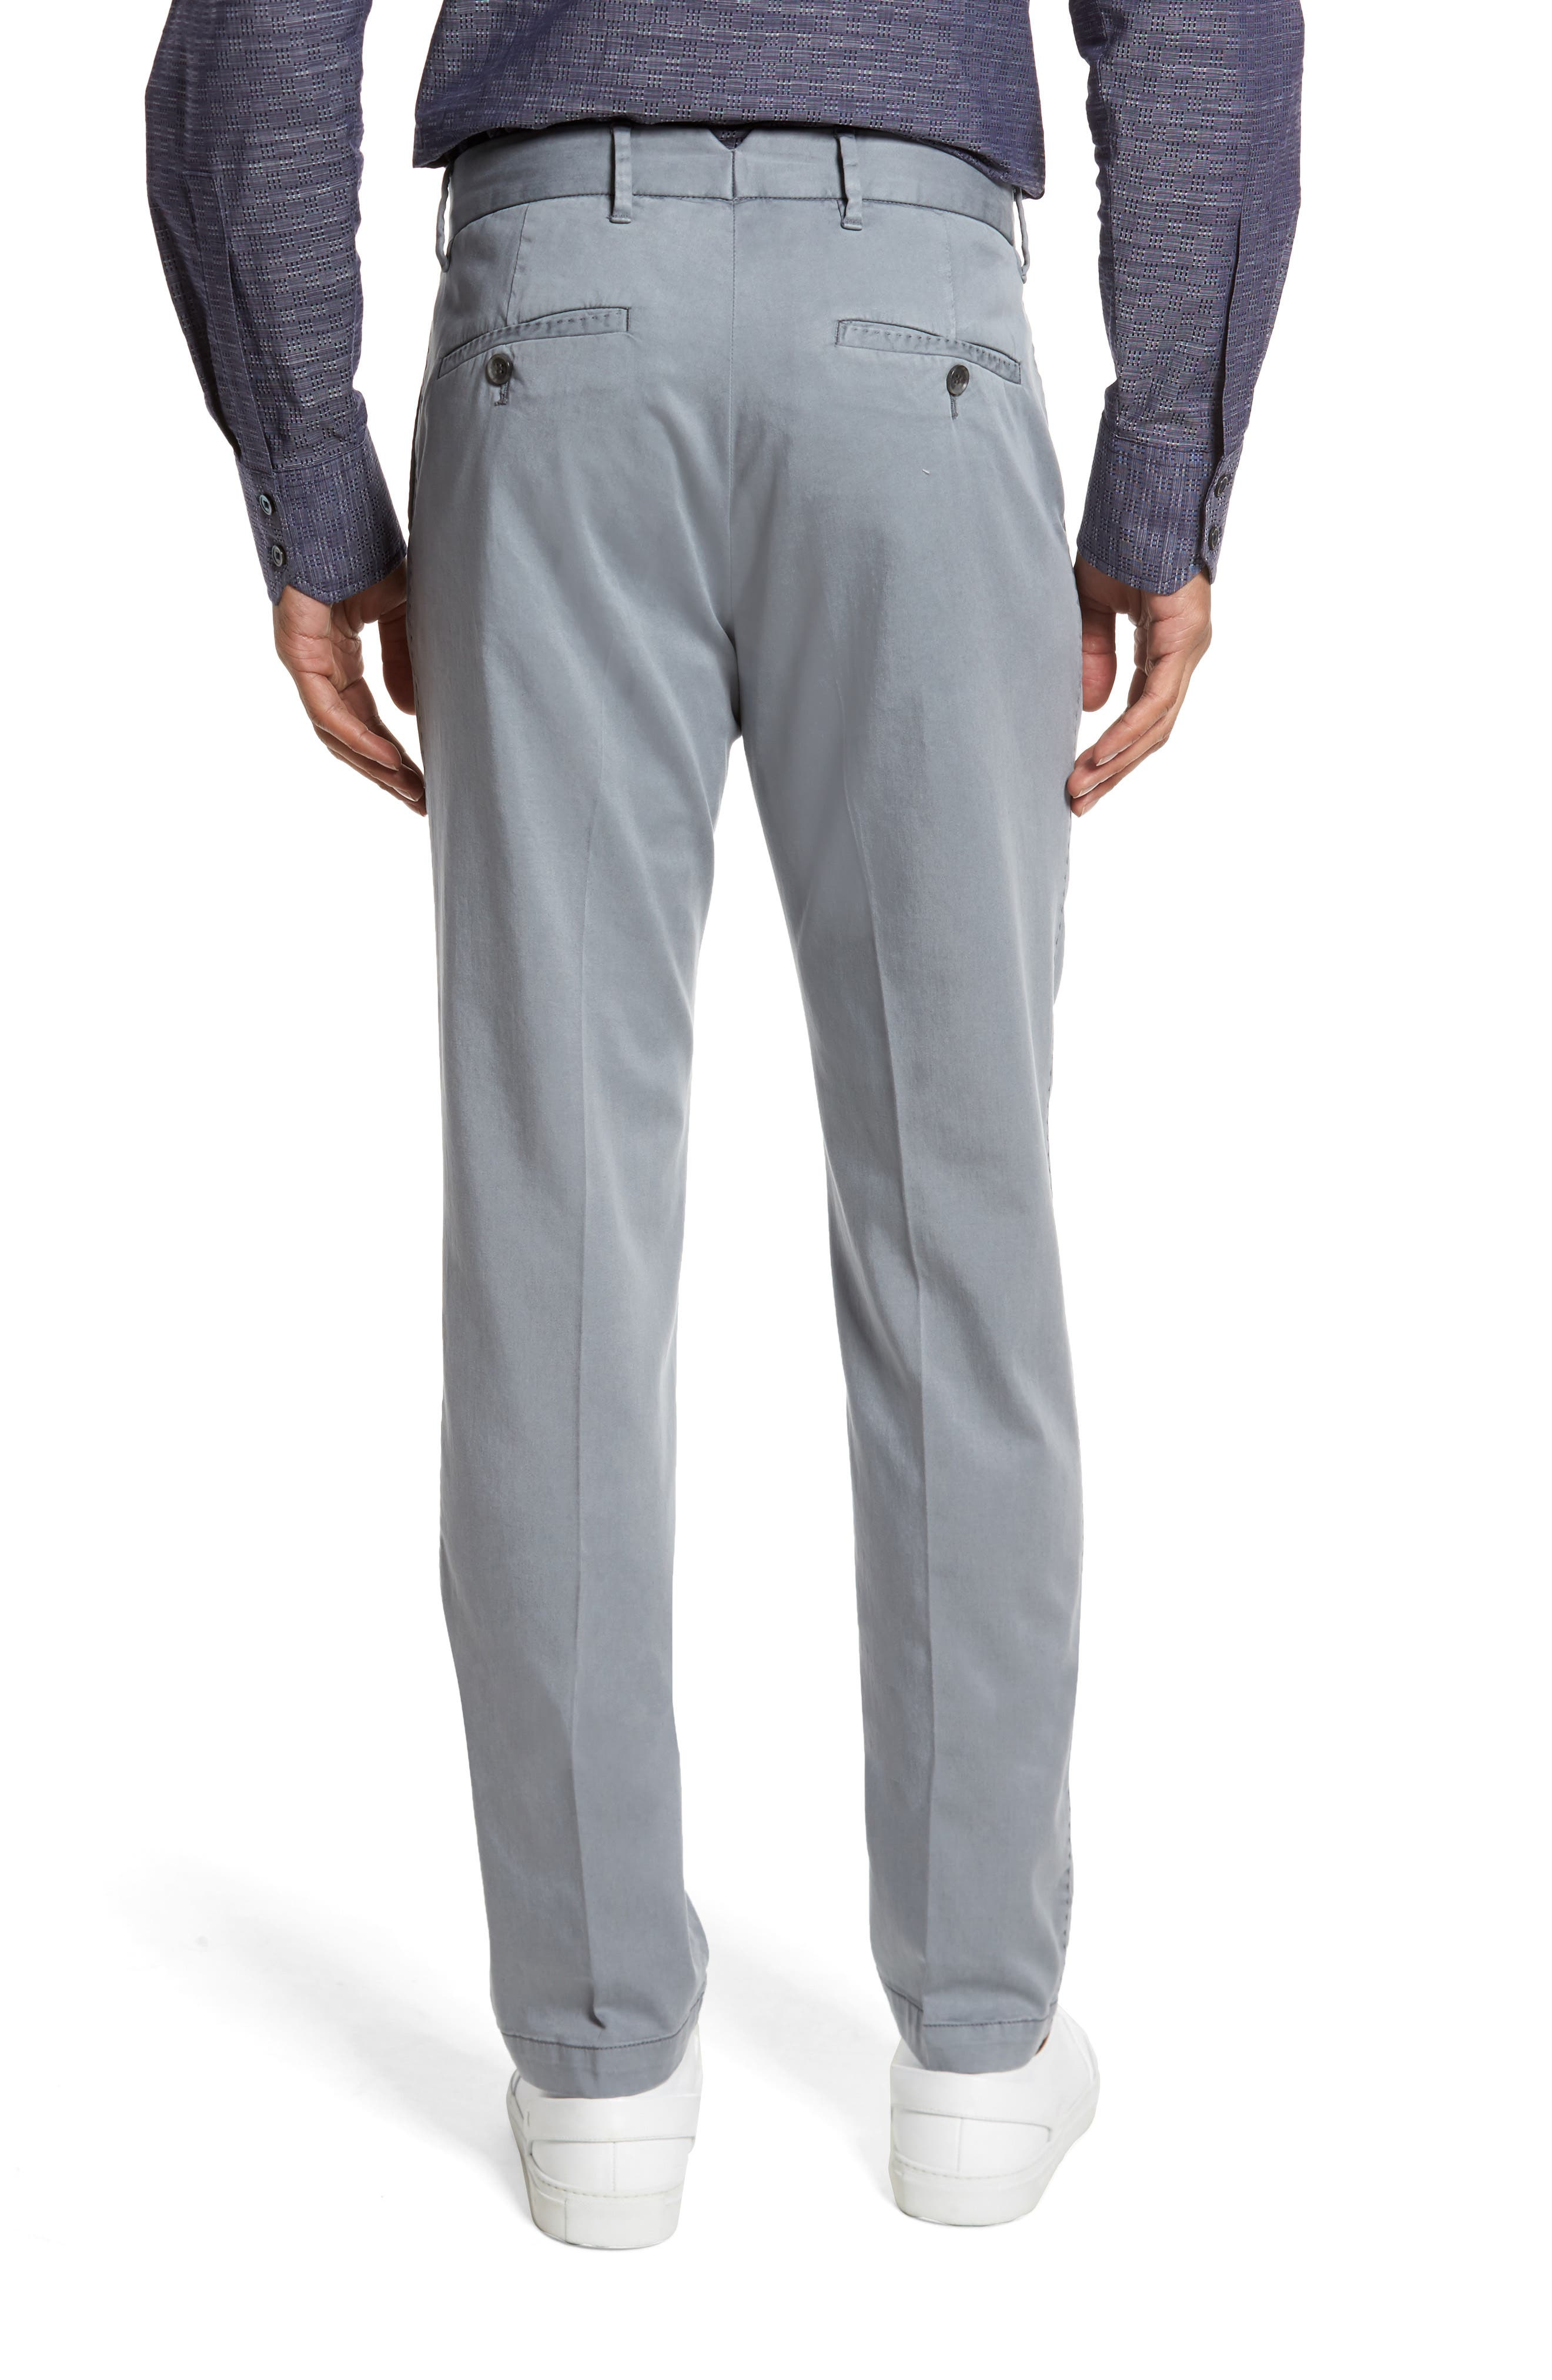 ZACHARY PRELL, Aster Straight Fit Pants, Alternate thumbnail 2, color, GREY